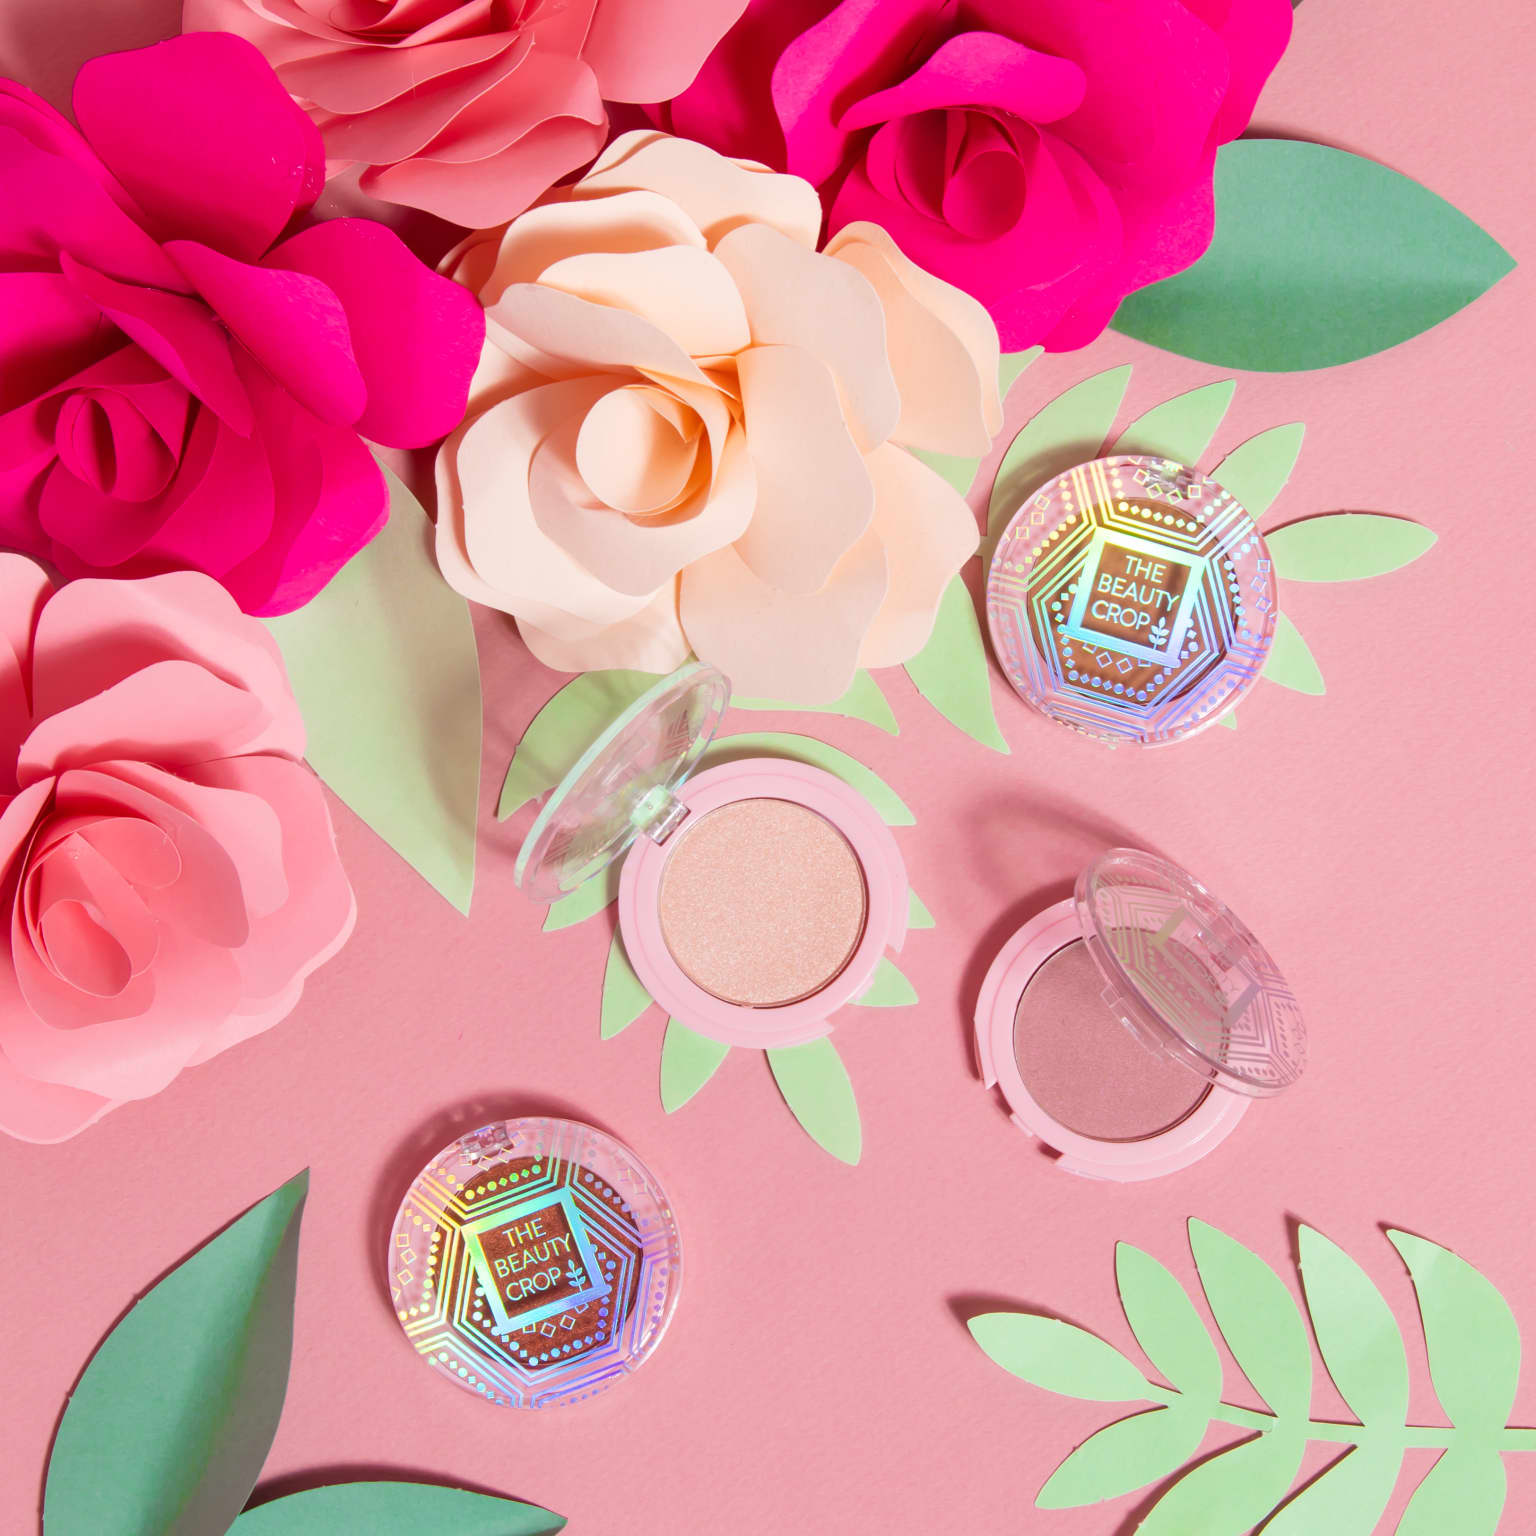 The Beauty Crop Product Photography